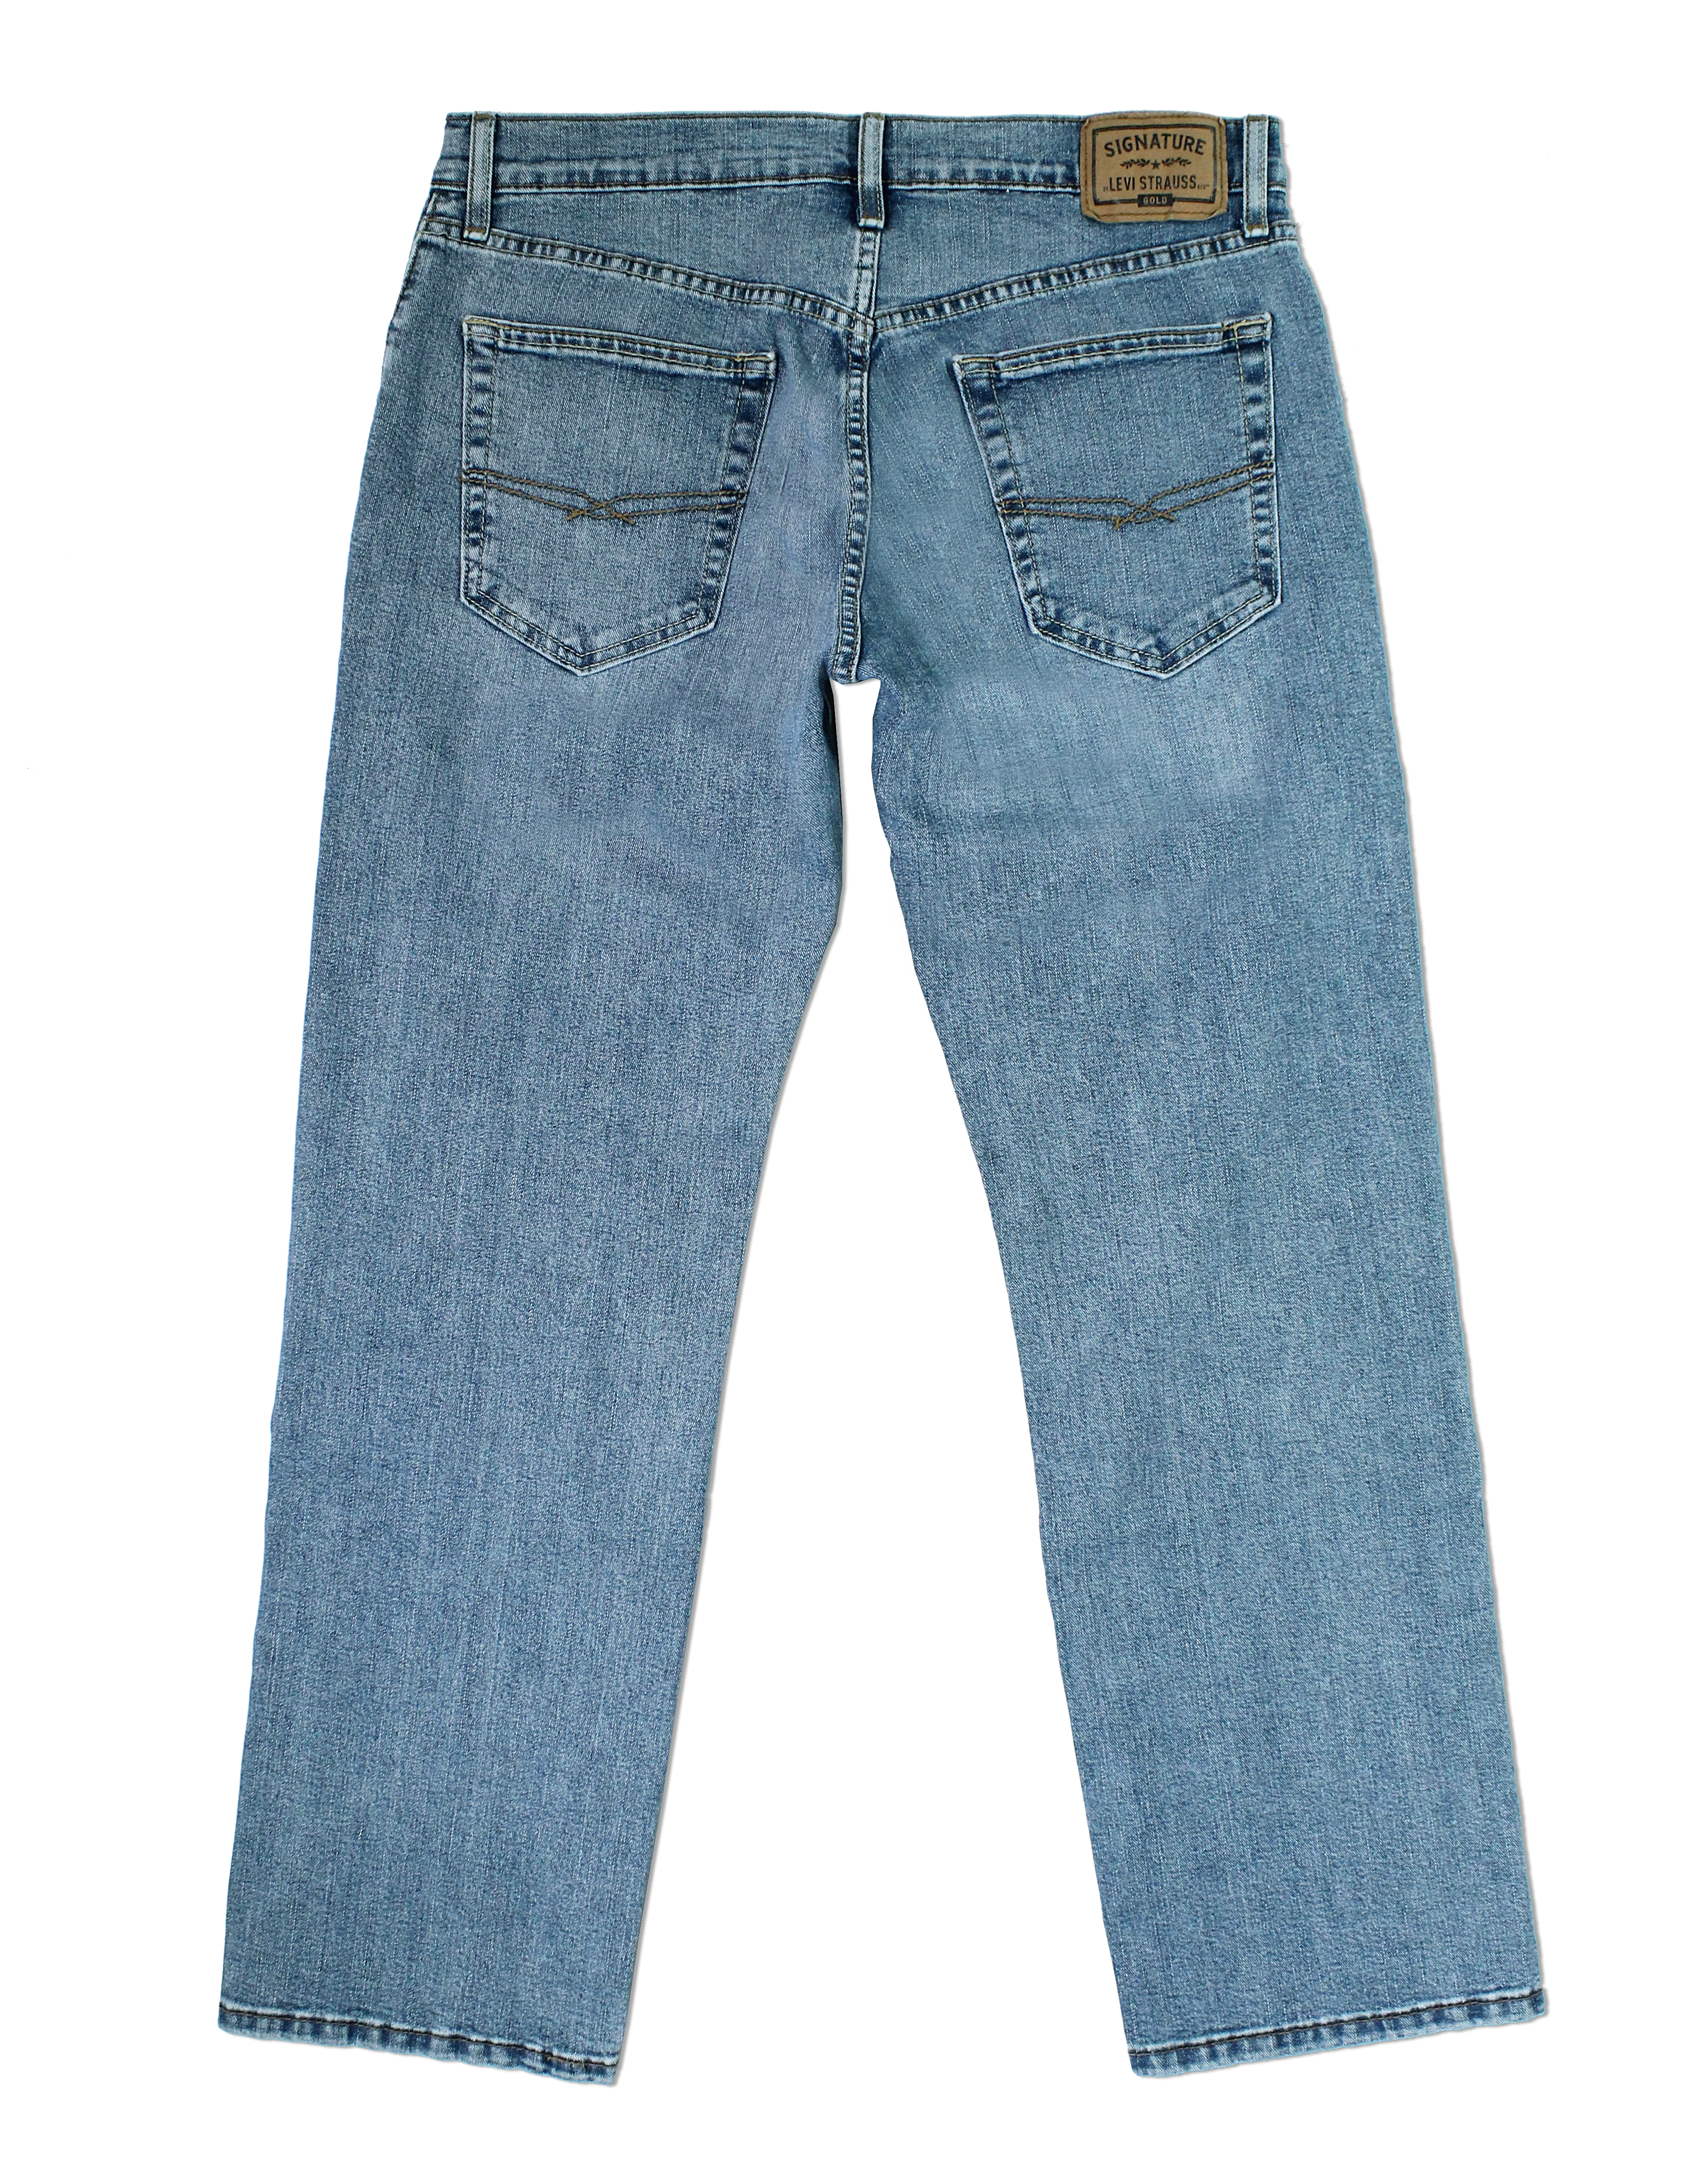 Signature-By-Levi-Strauss-amp-Co-Gold-Label-Titan-Blue-Men-Relaxed-Fit-Jeans thumbnail 4